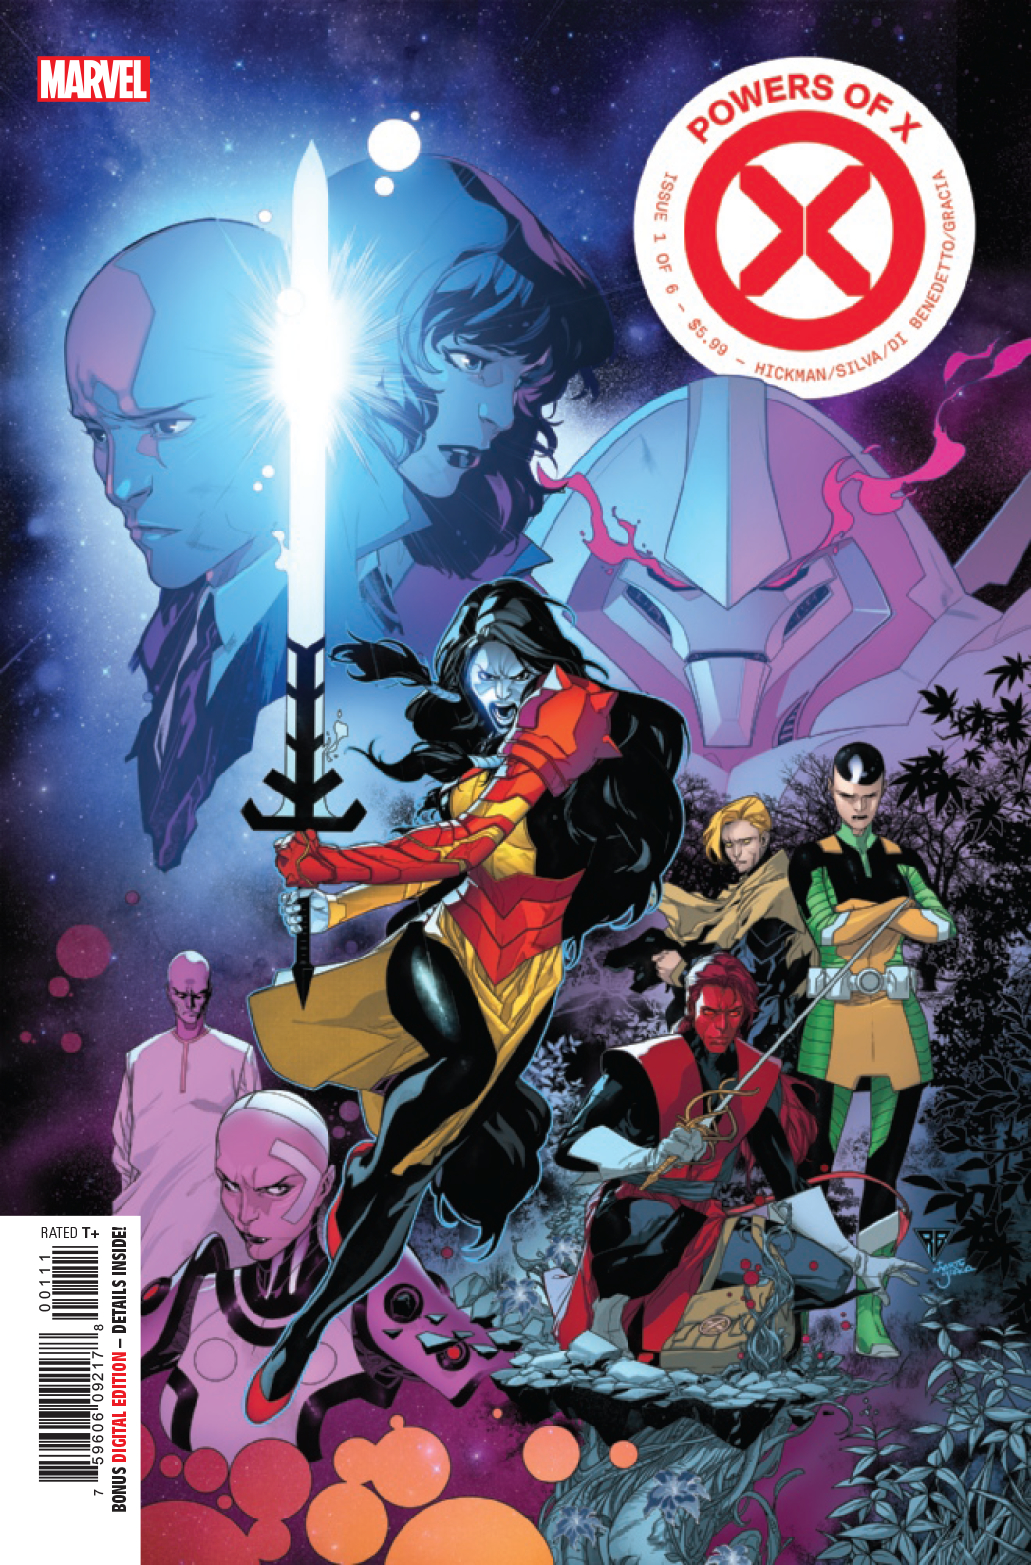 Powers of X #1  is out now!